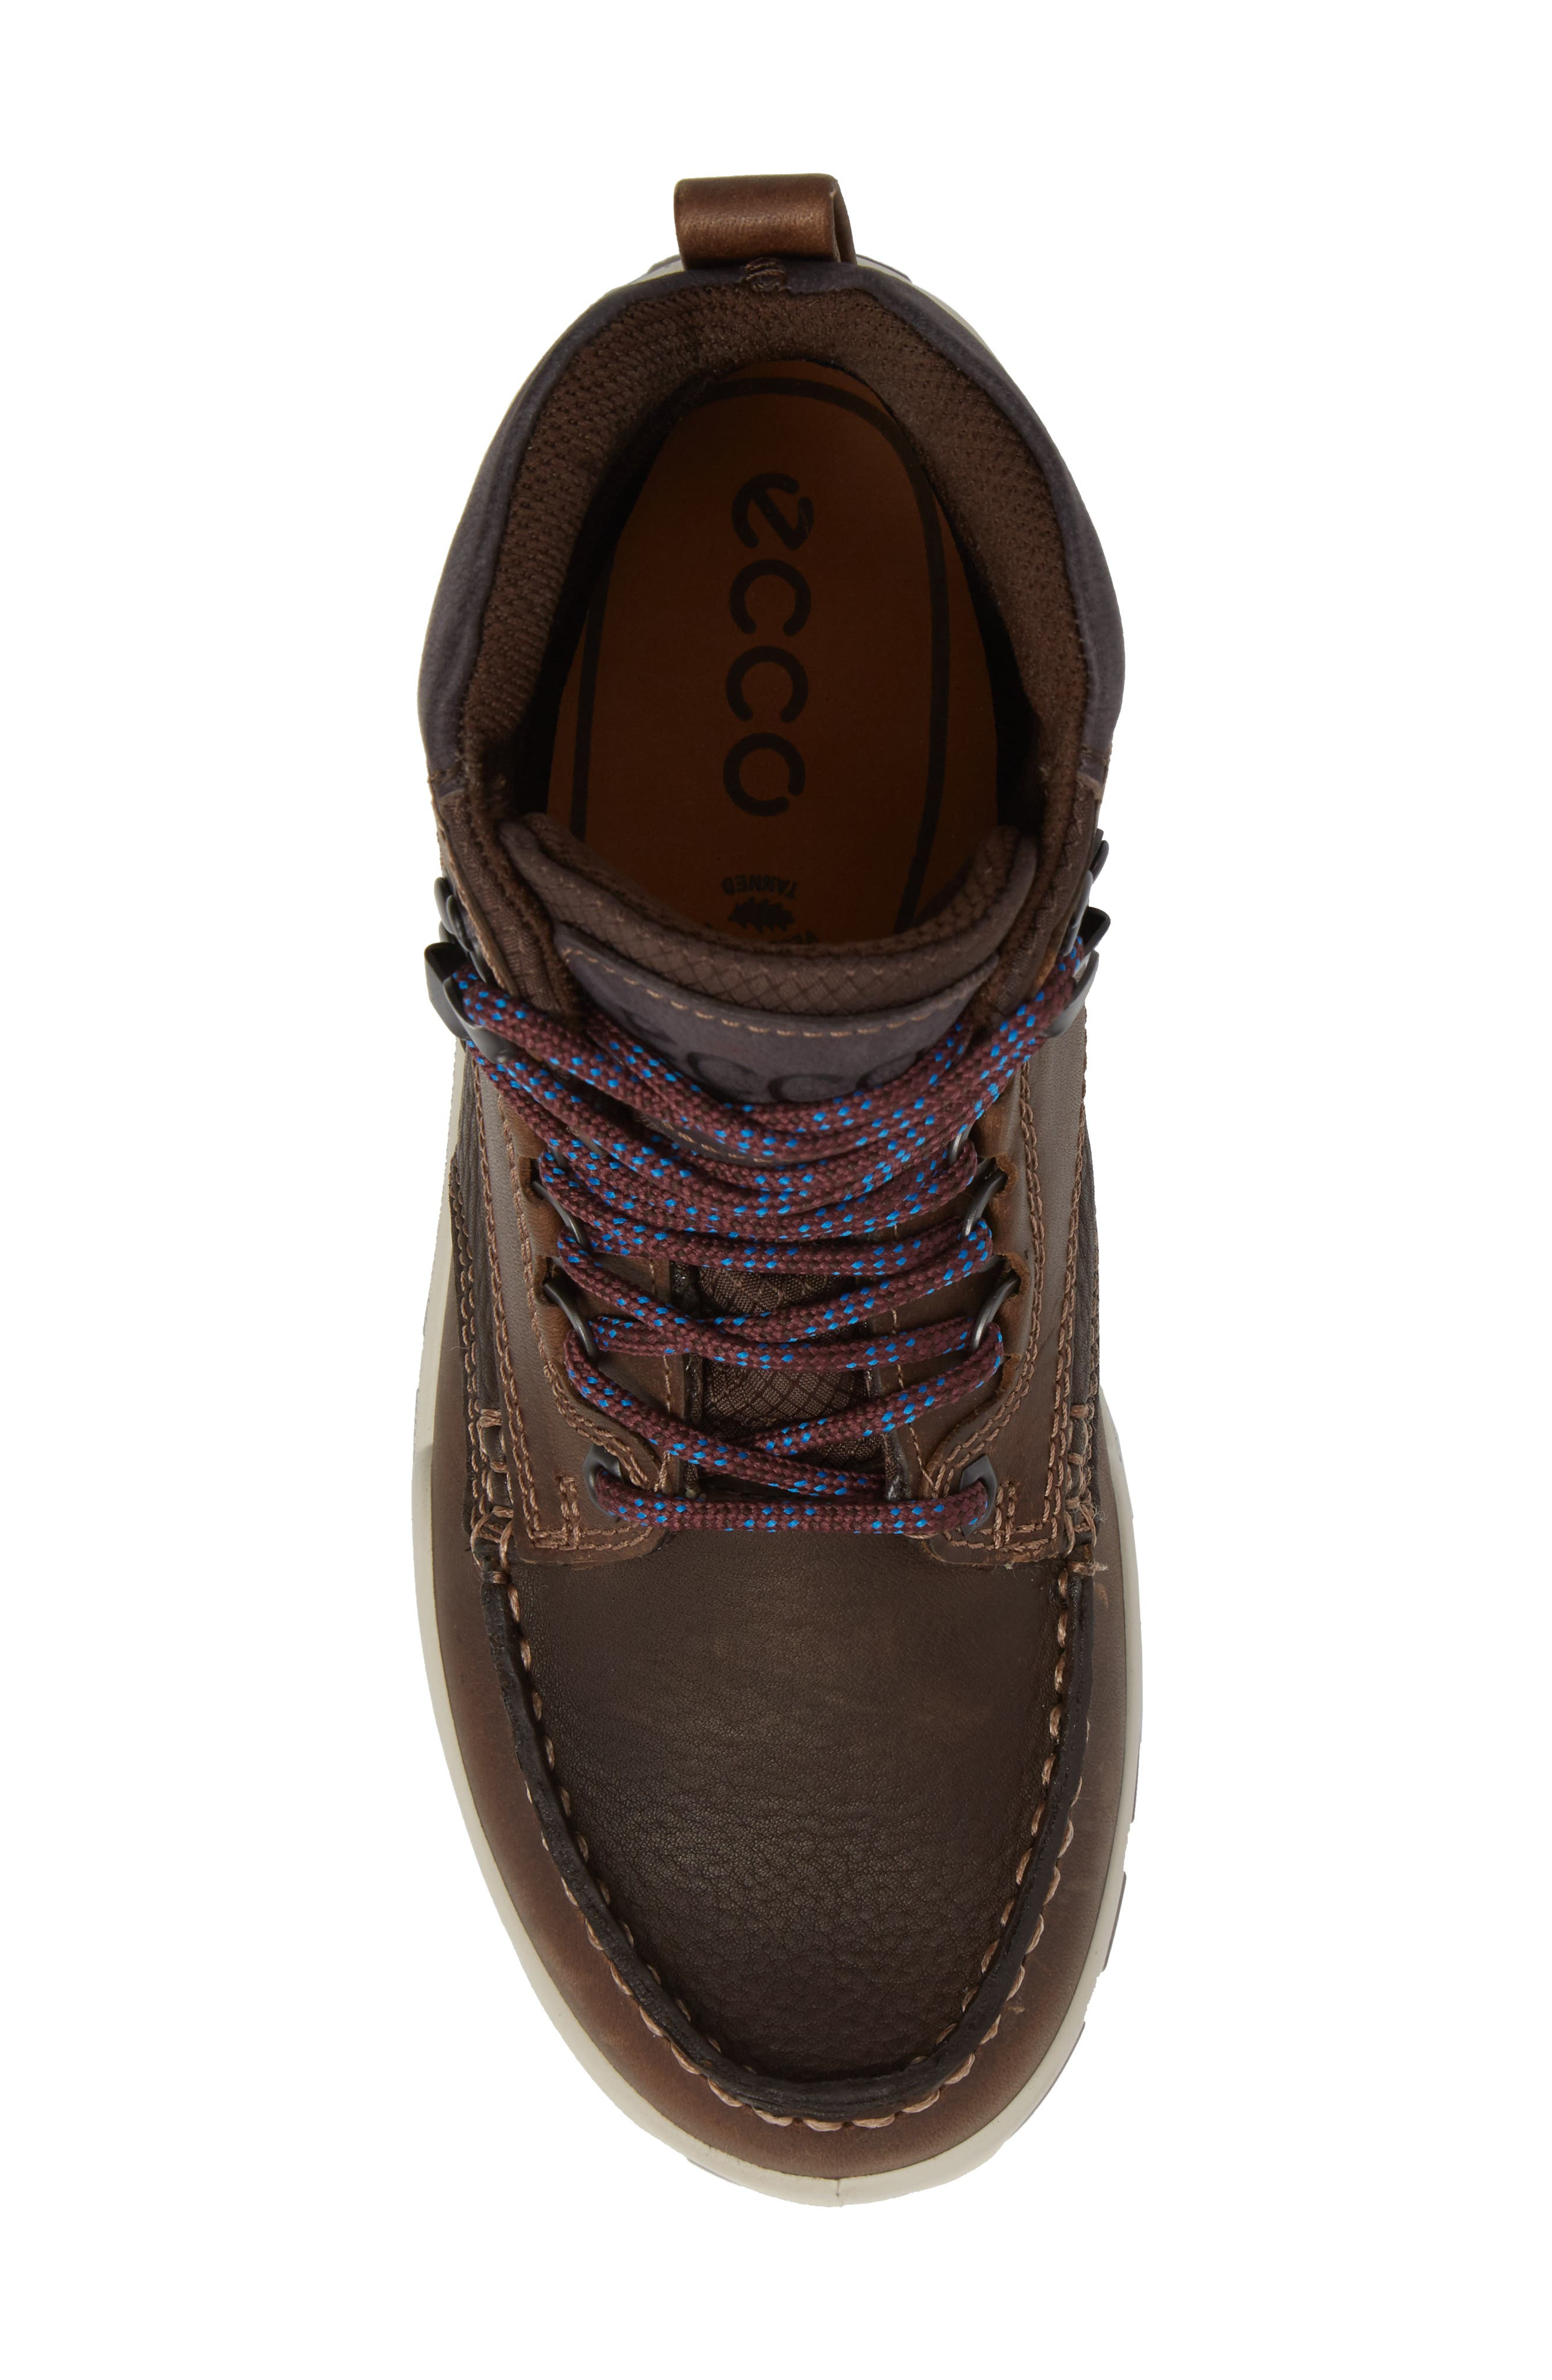 Track 25 Gore-Tex<sup>®</sup> Waterproof Hiking Boot,                             Alternate thumbnail 5, color,                             Cocoa Brown Leather